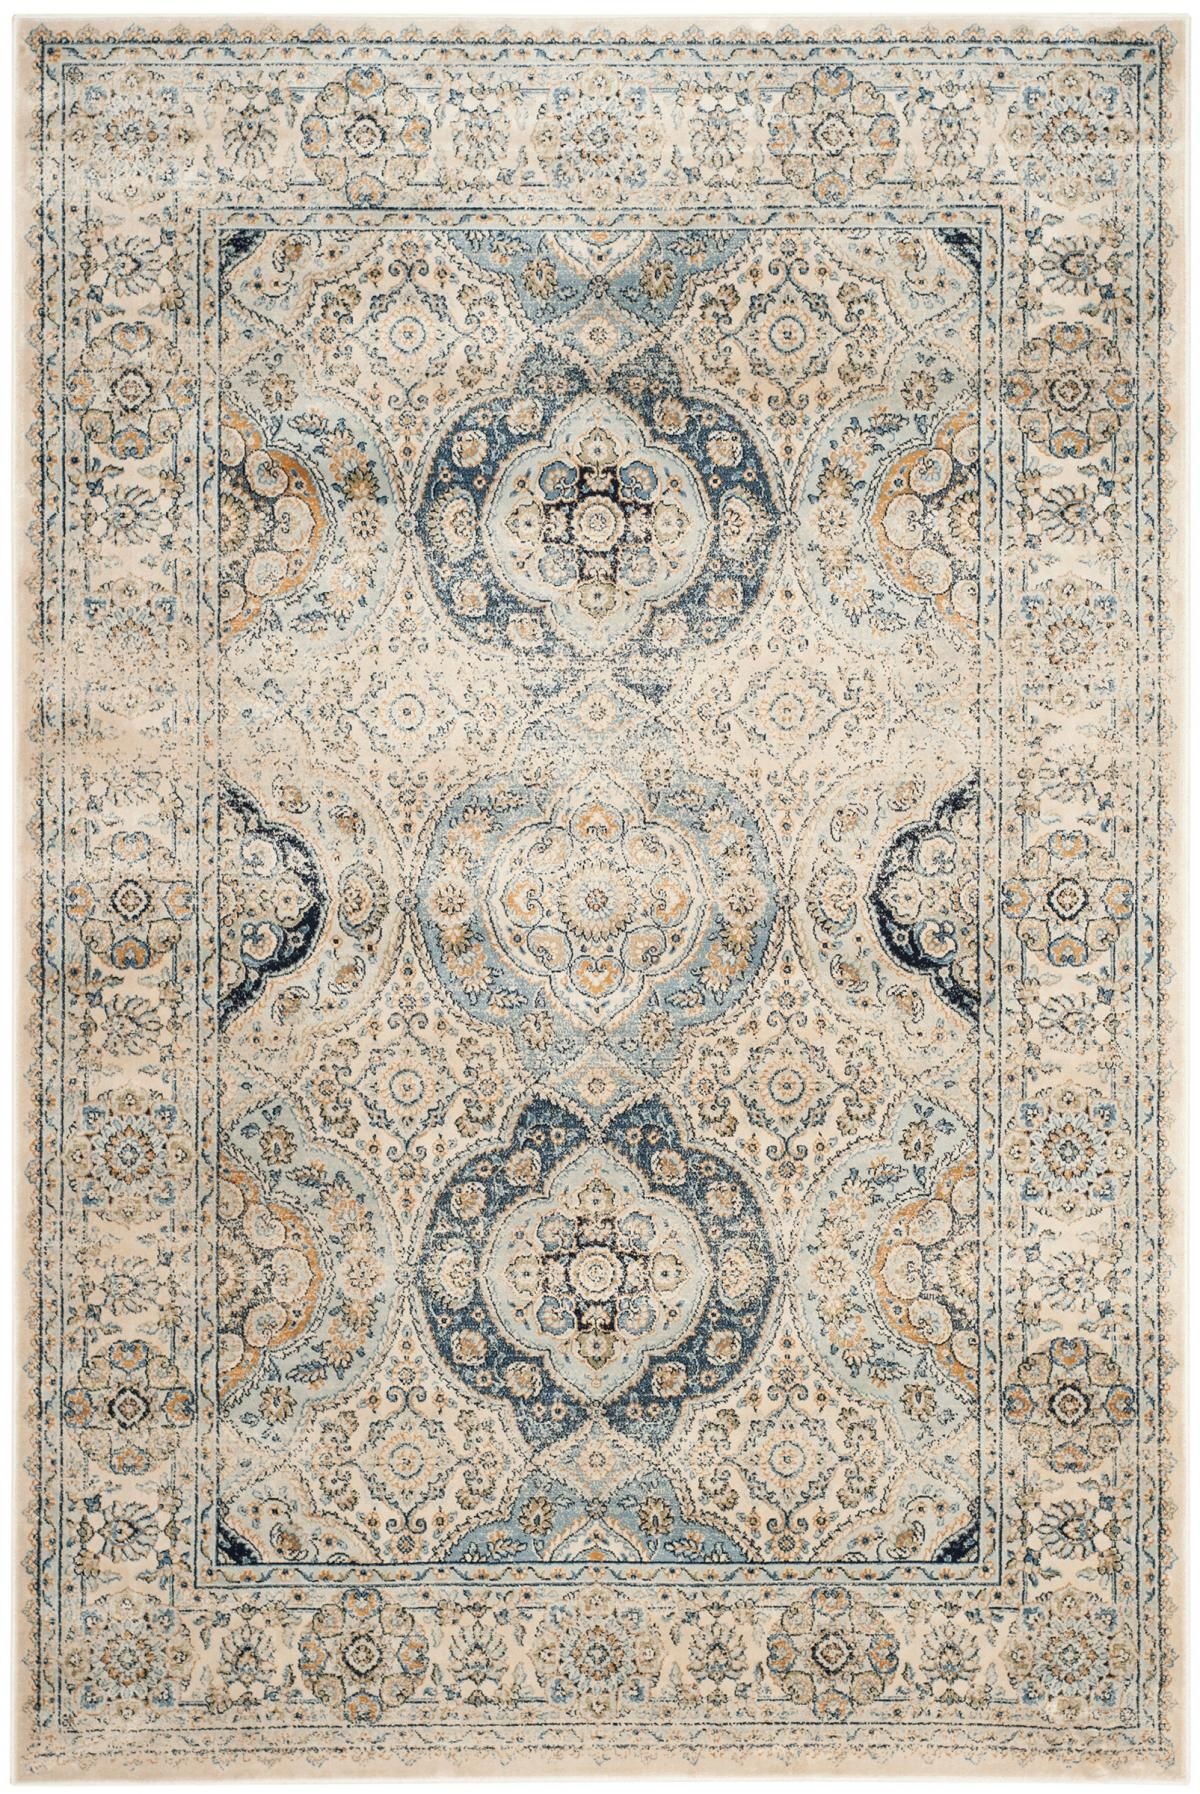 The classic design of antique persian rugs is treated to a designer look distressed patina in these marvelously imaginative area rugs